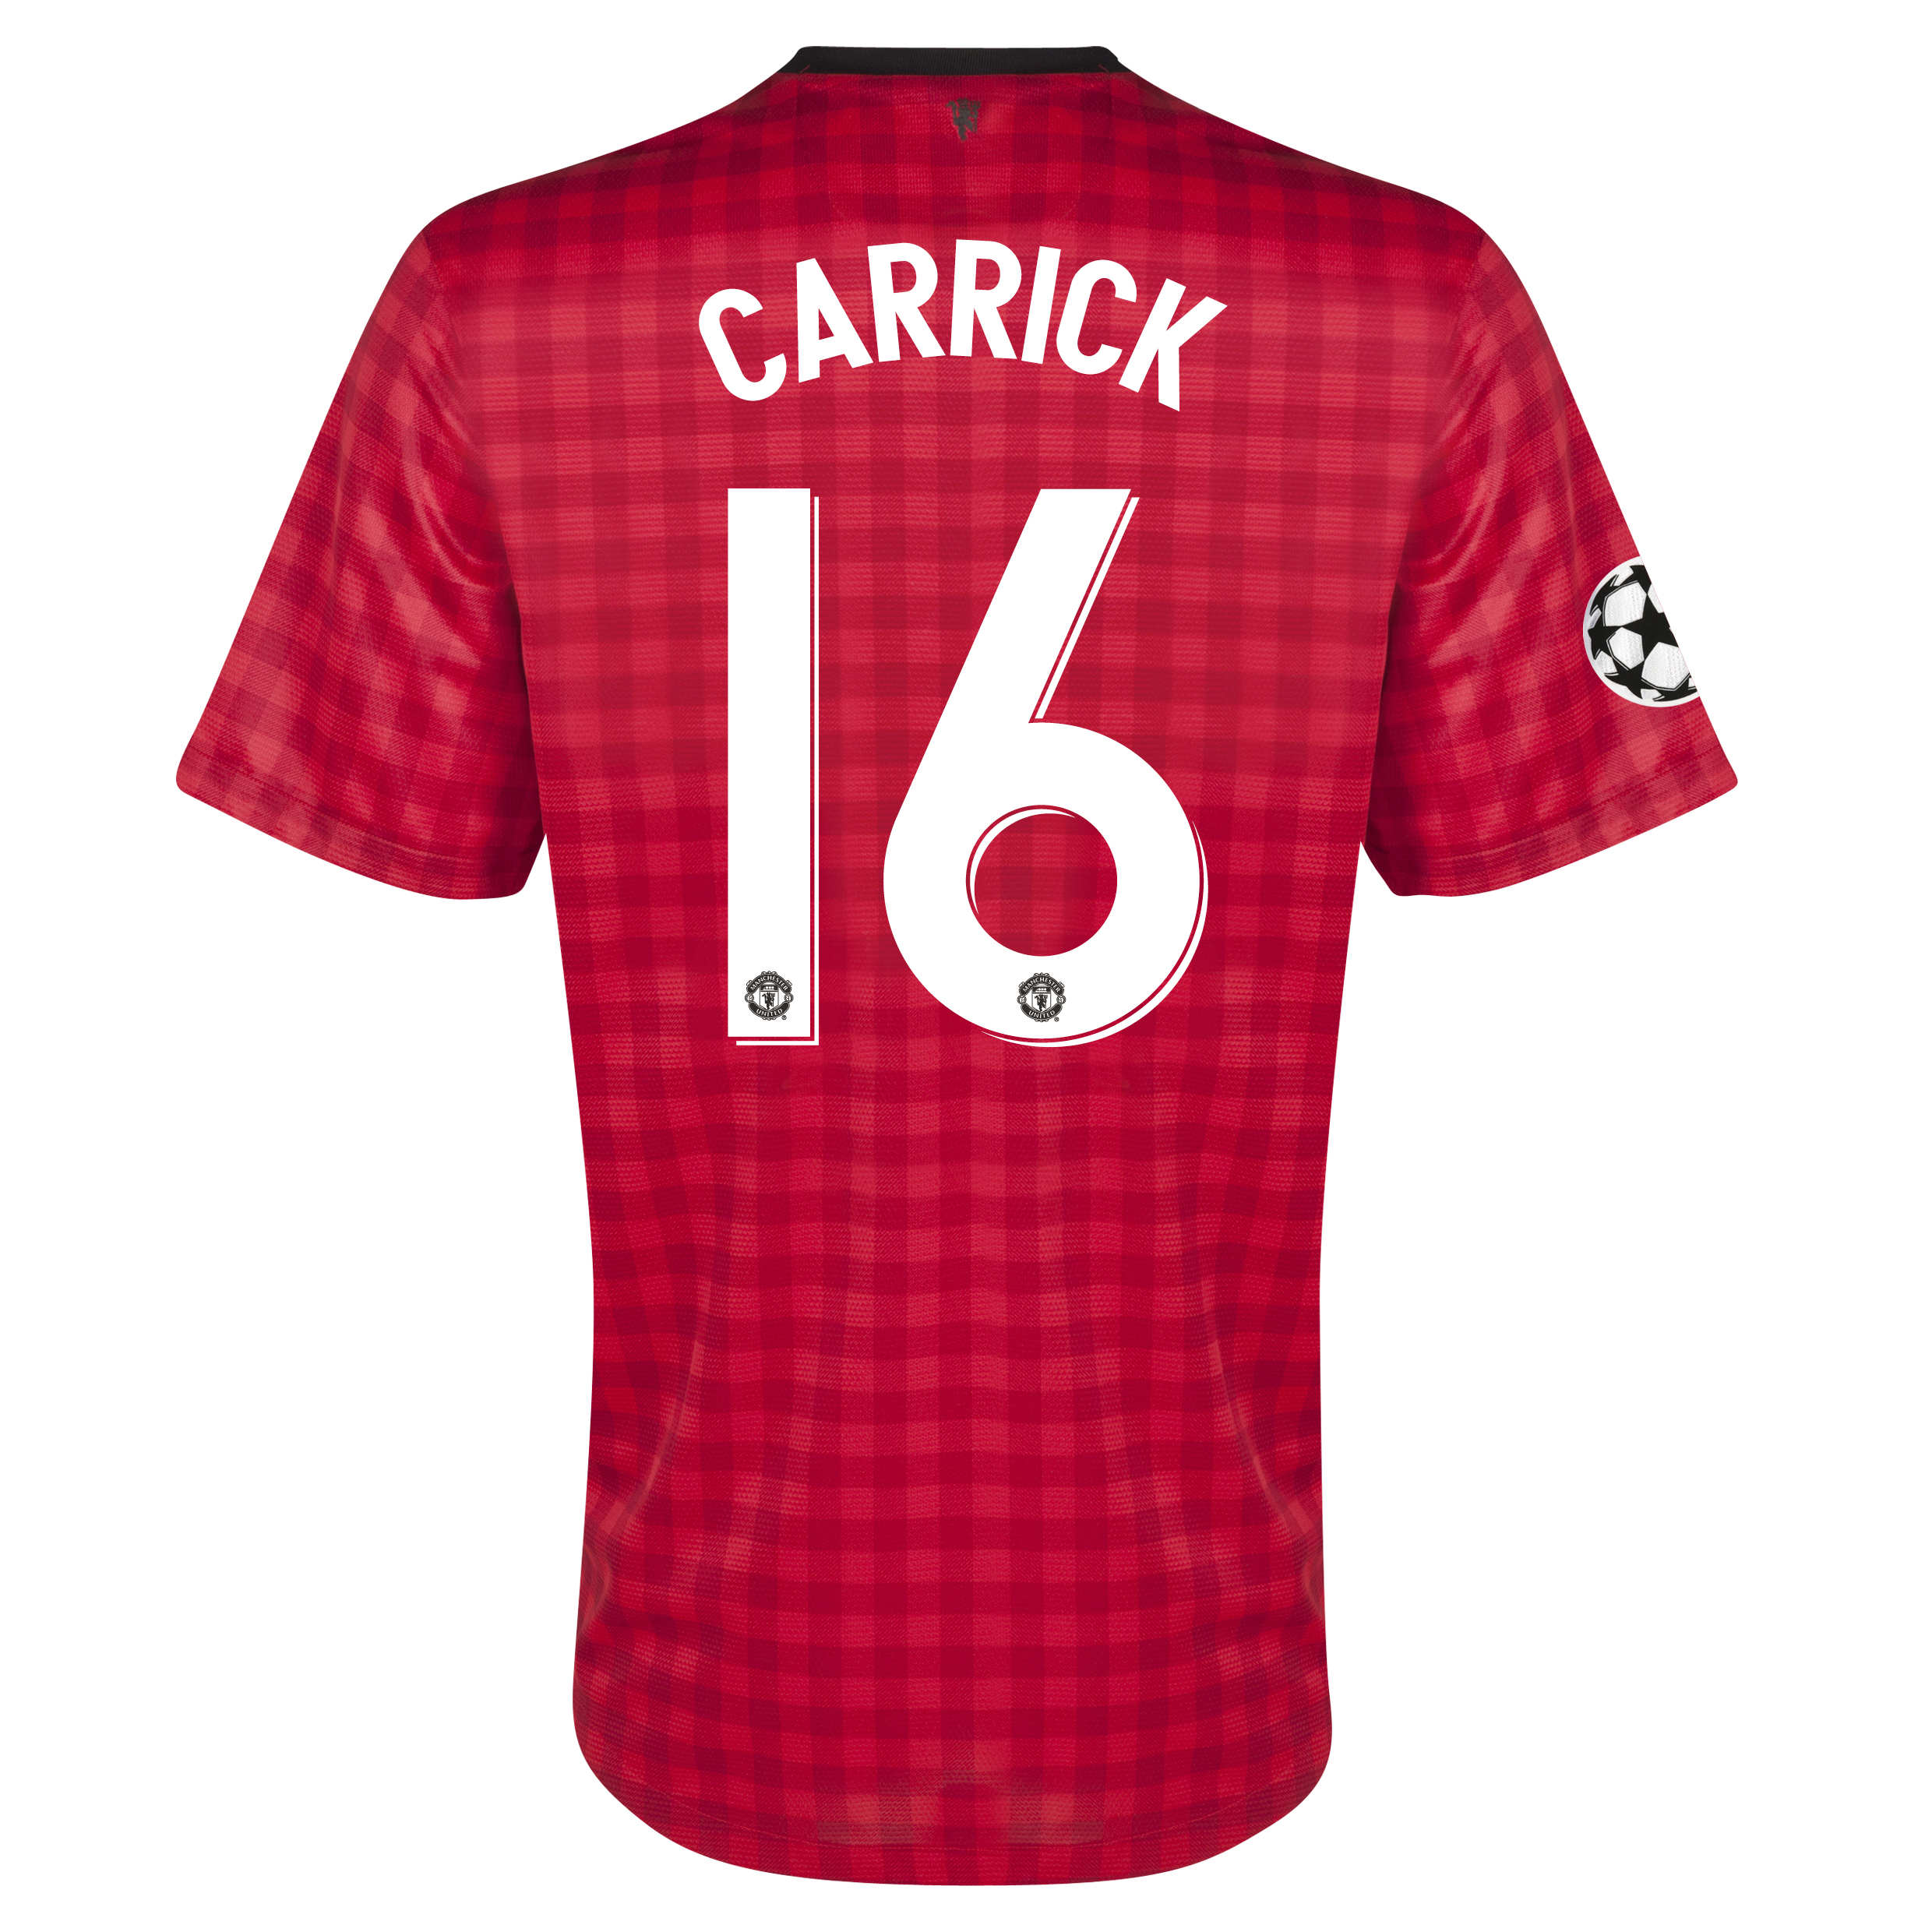 Man United UEFA Champions League Home Shirt 2012/13  - Youths with Carrick 16 printing